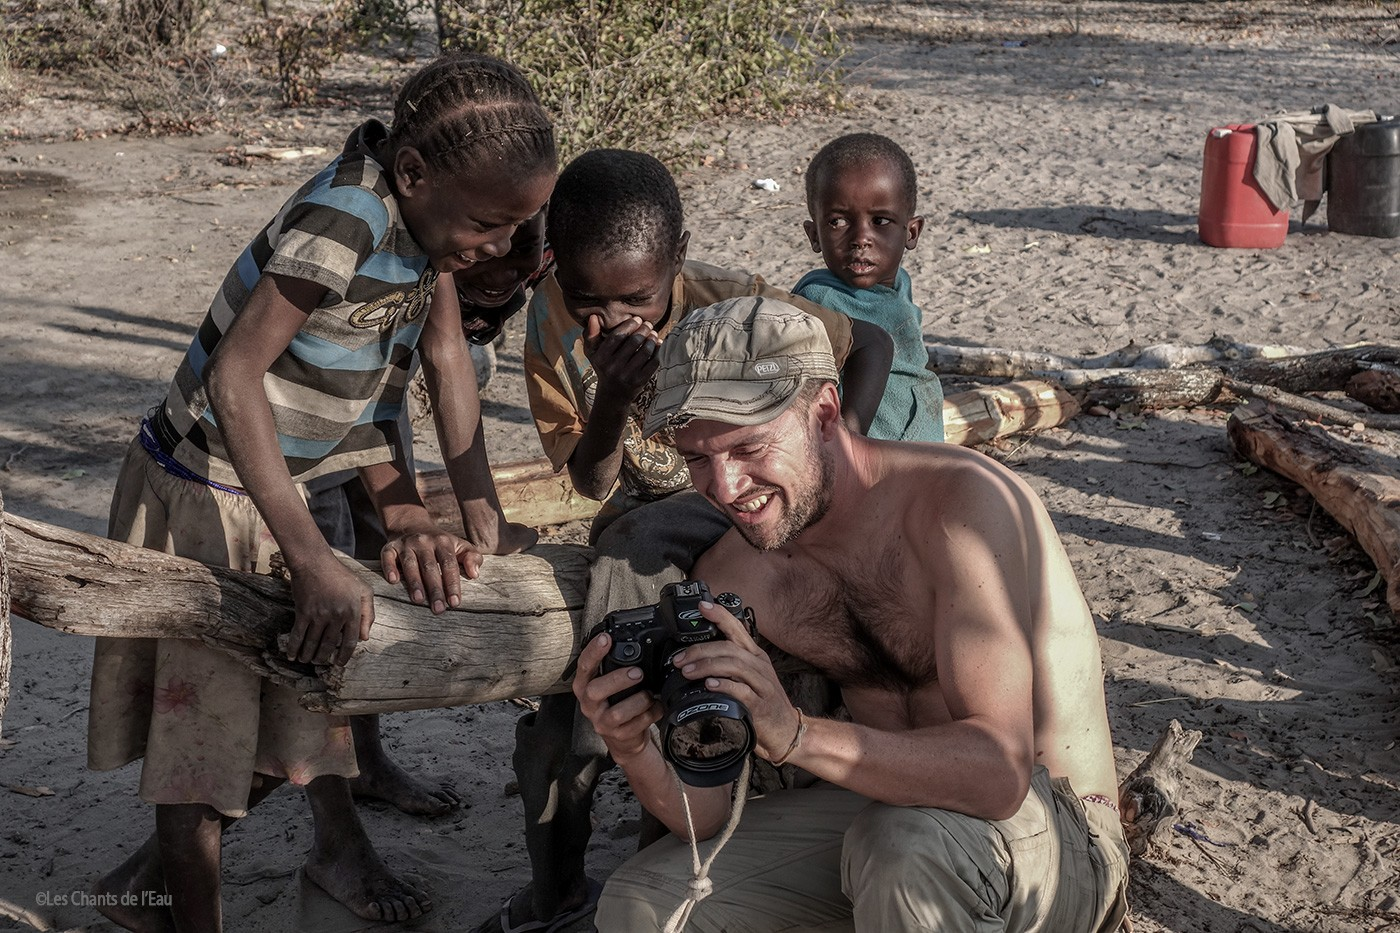 Guillaume Broust - Filming in Namibia ©Les Chants de l'Eau